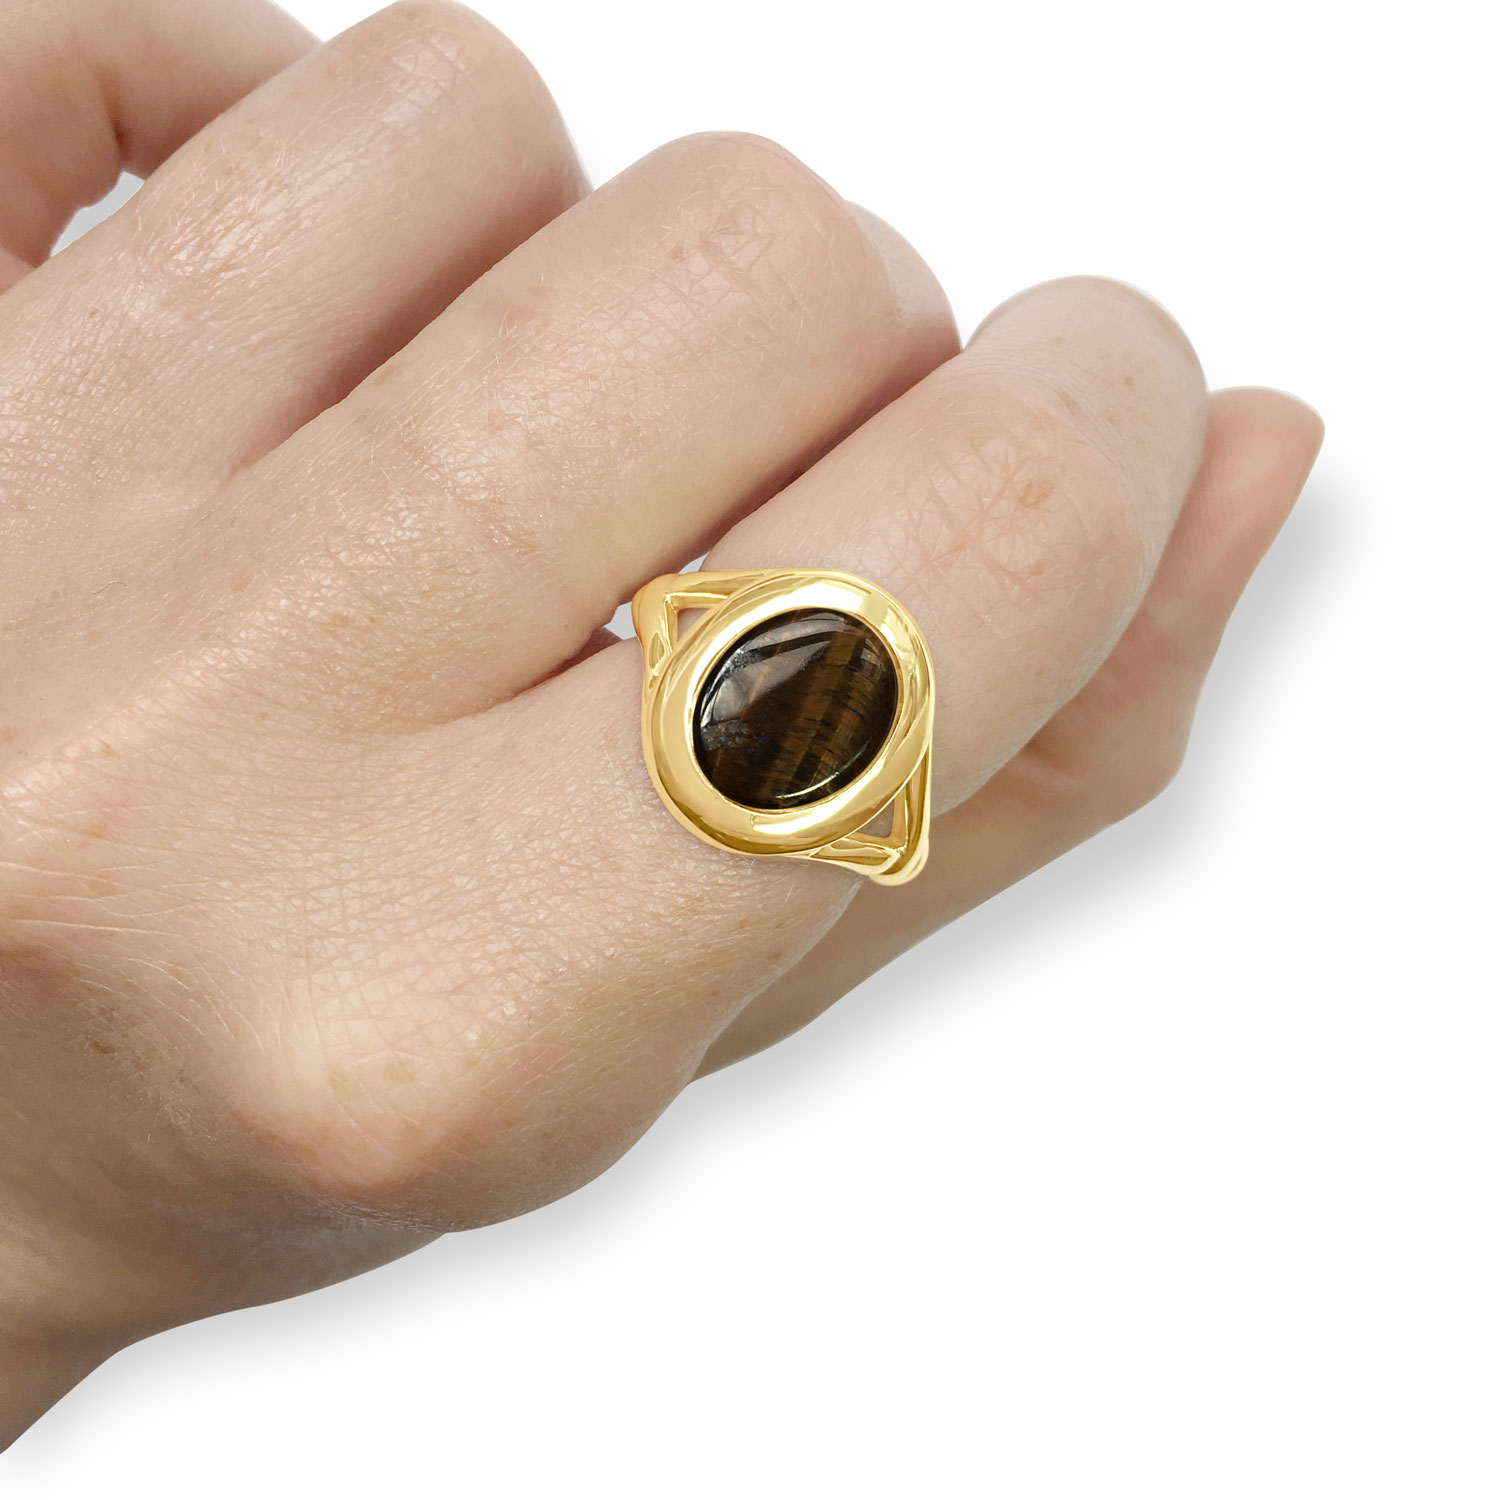 Tiger's eye and yellow gold signet ring hand